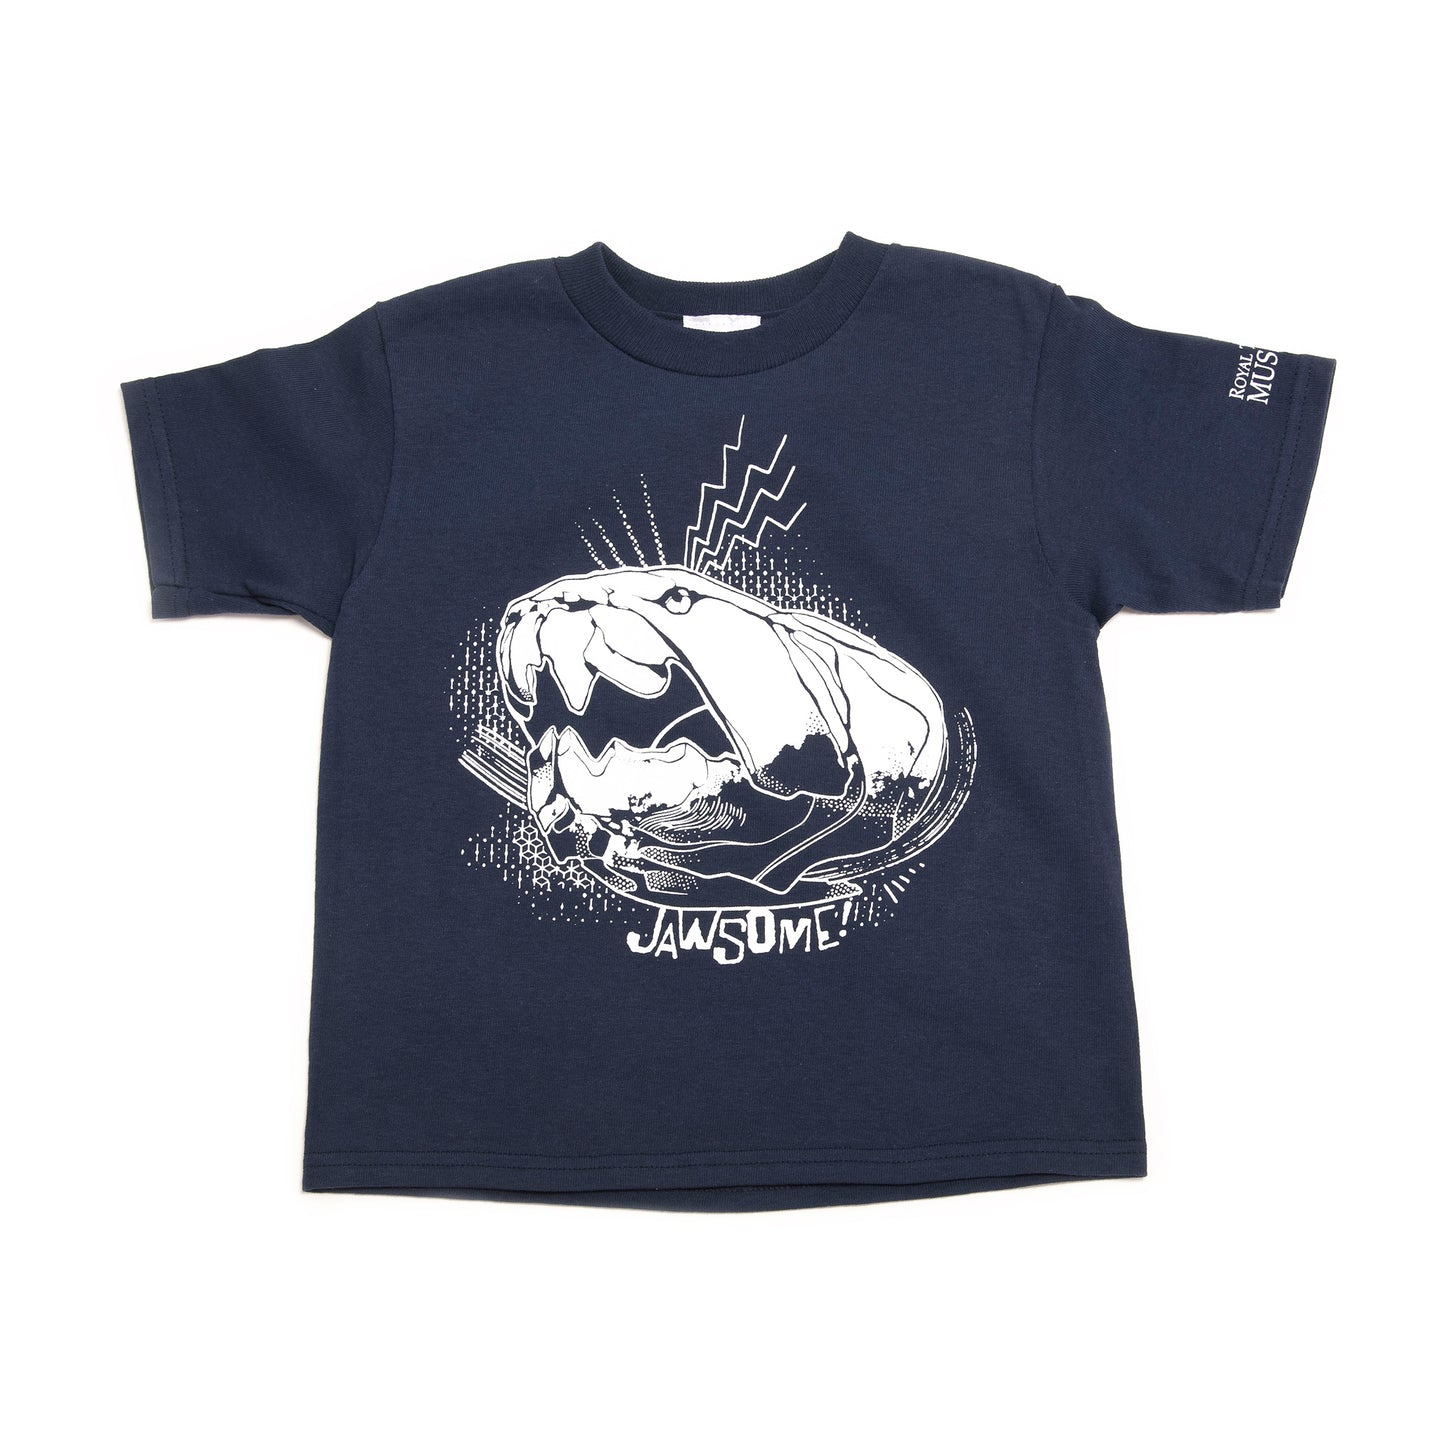 Dunkleosteus Child T-shirt